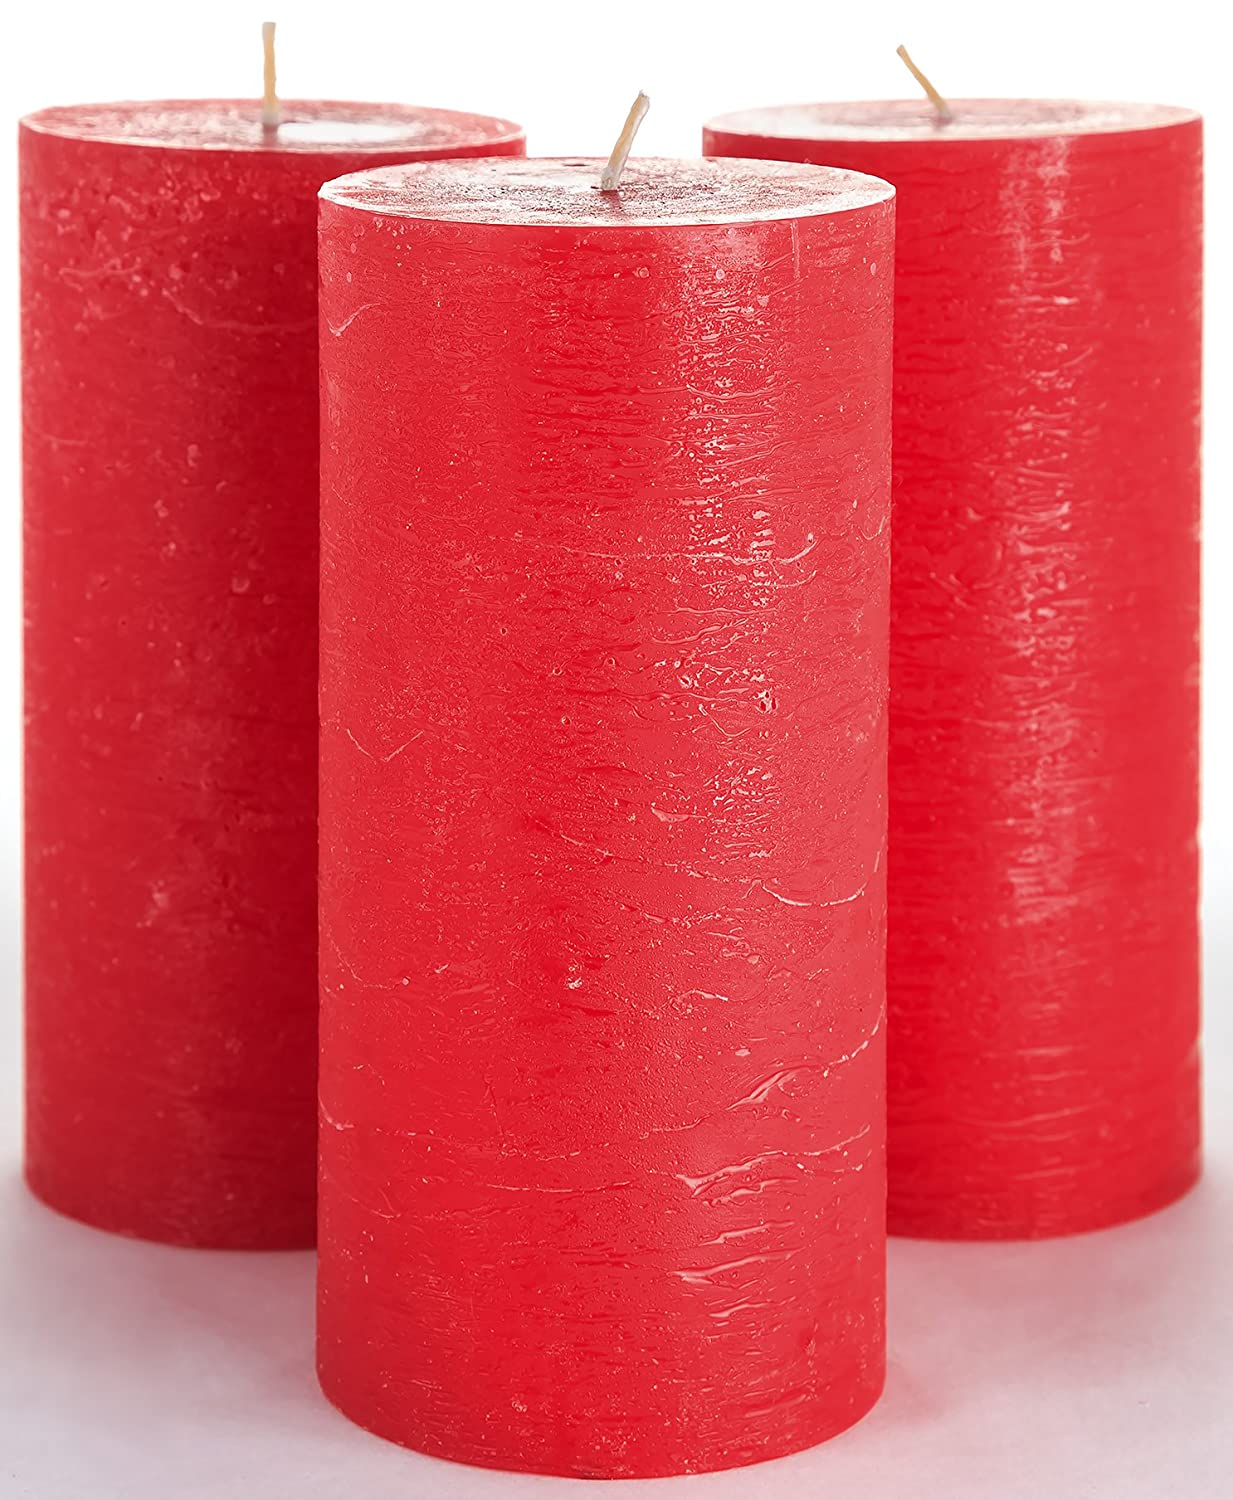 "Melt Candle Company Set of 3 Red Pillar Candles 3"" x 6"" Unscented for Weddings Home Decoration Church Restaurant Spa Dripless Smokeless Cotton Wick"